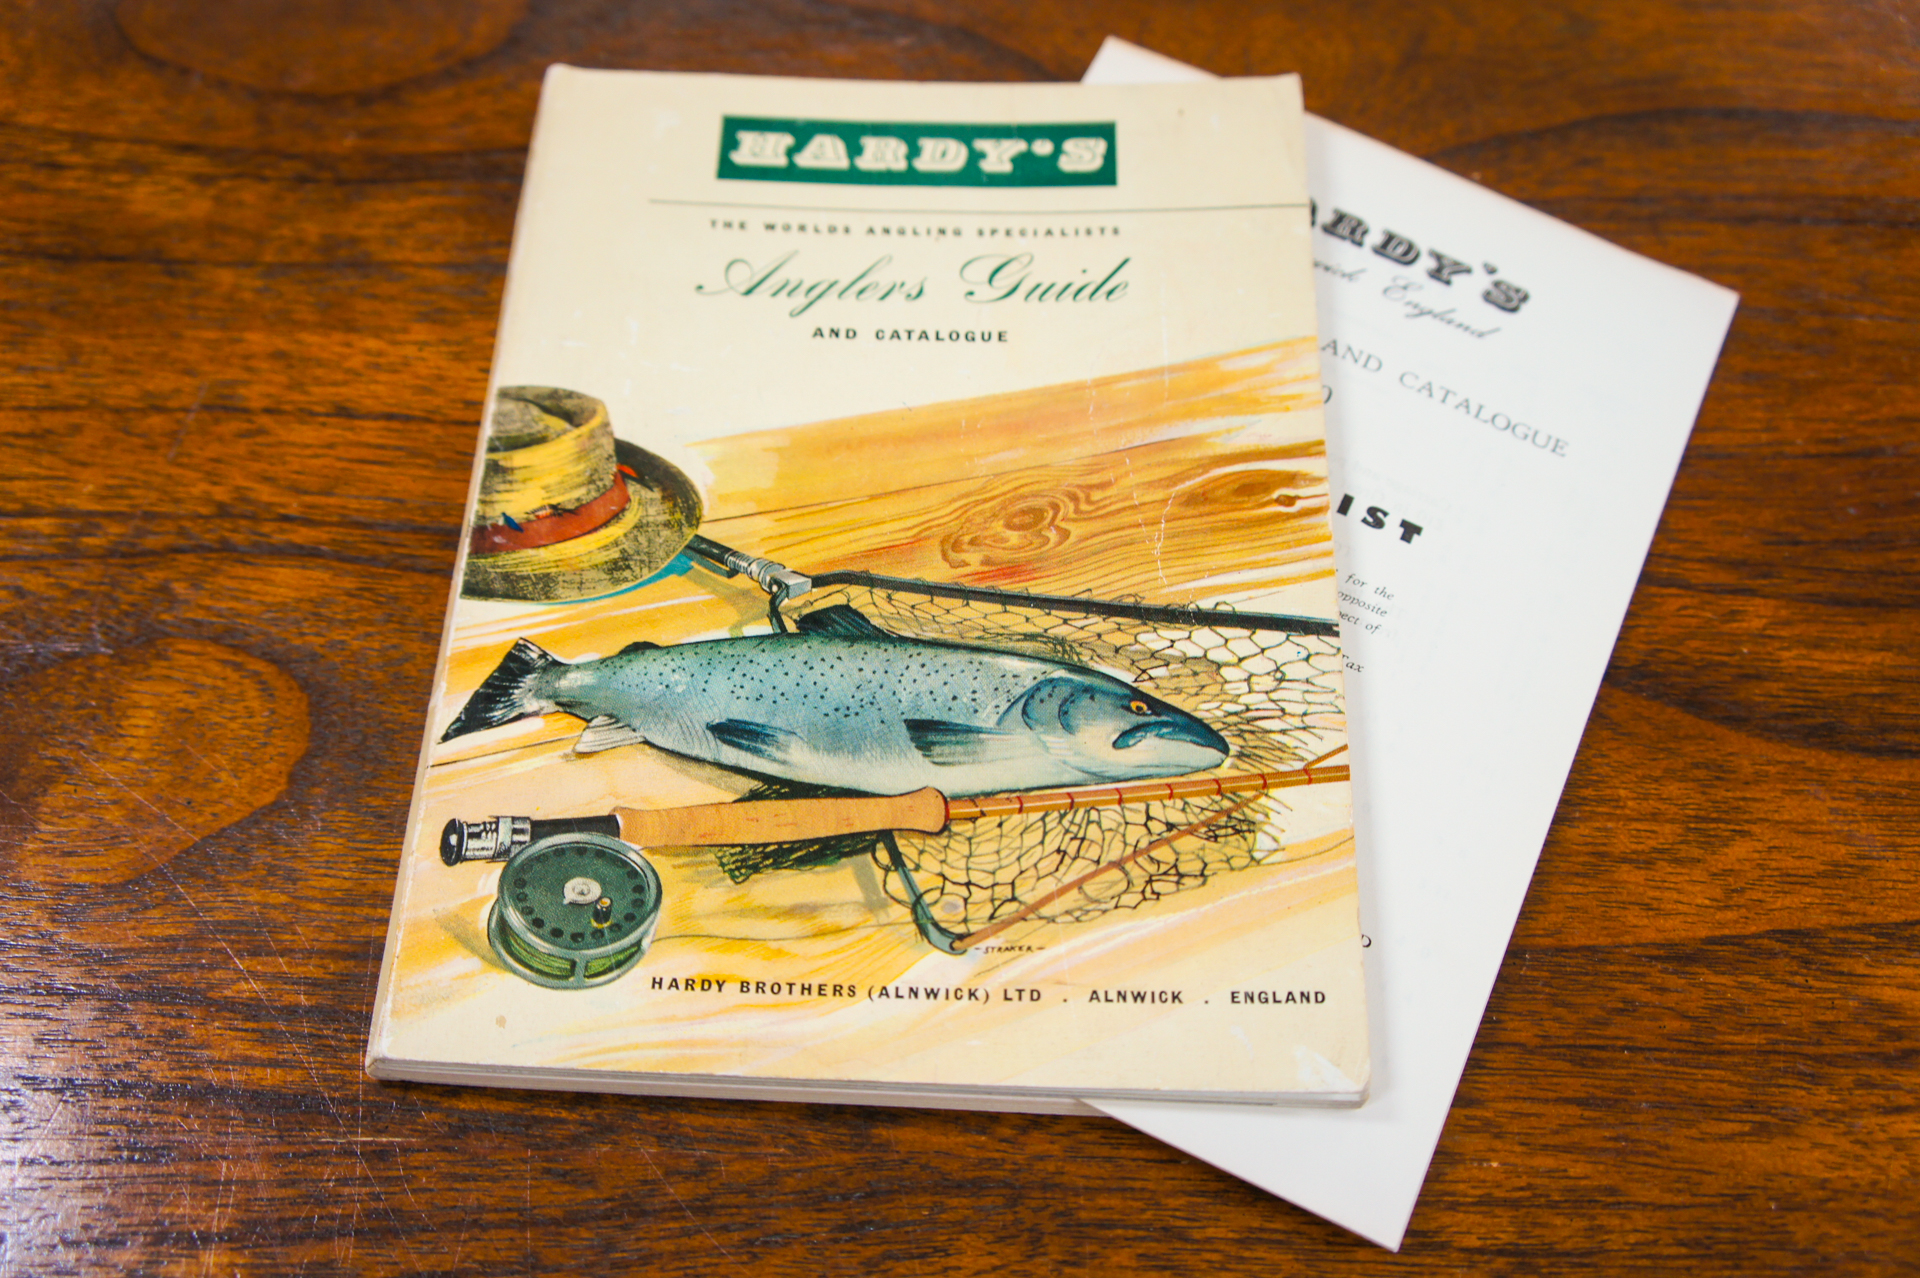 Hardy angler s guide catalogue 1960 price list for Antique fishing reels price guide